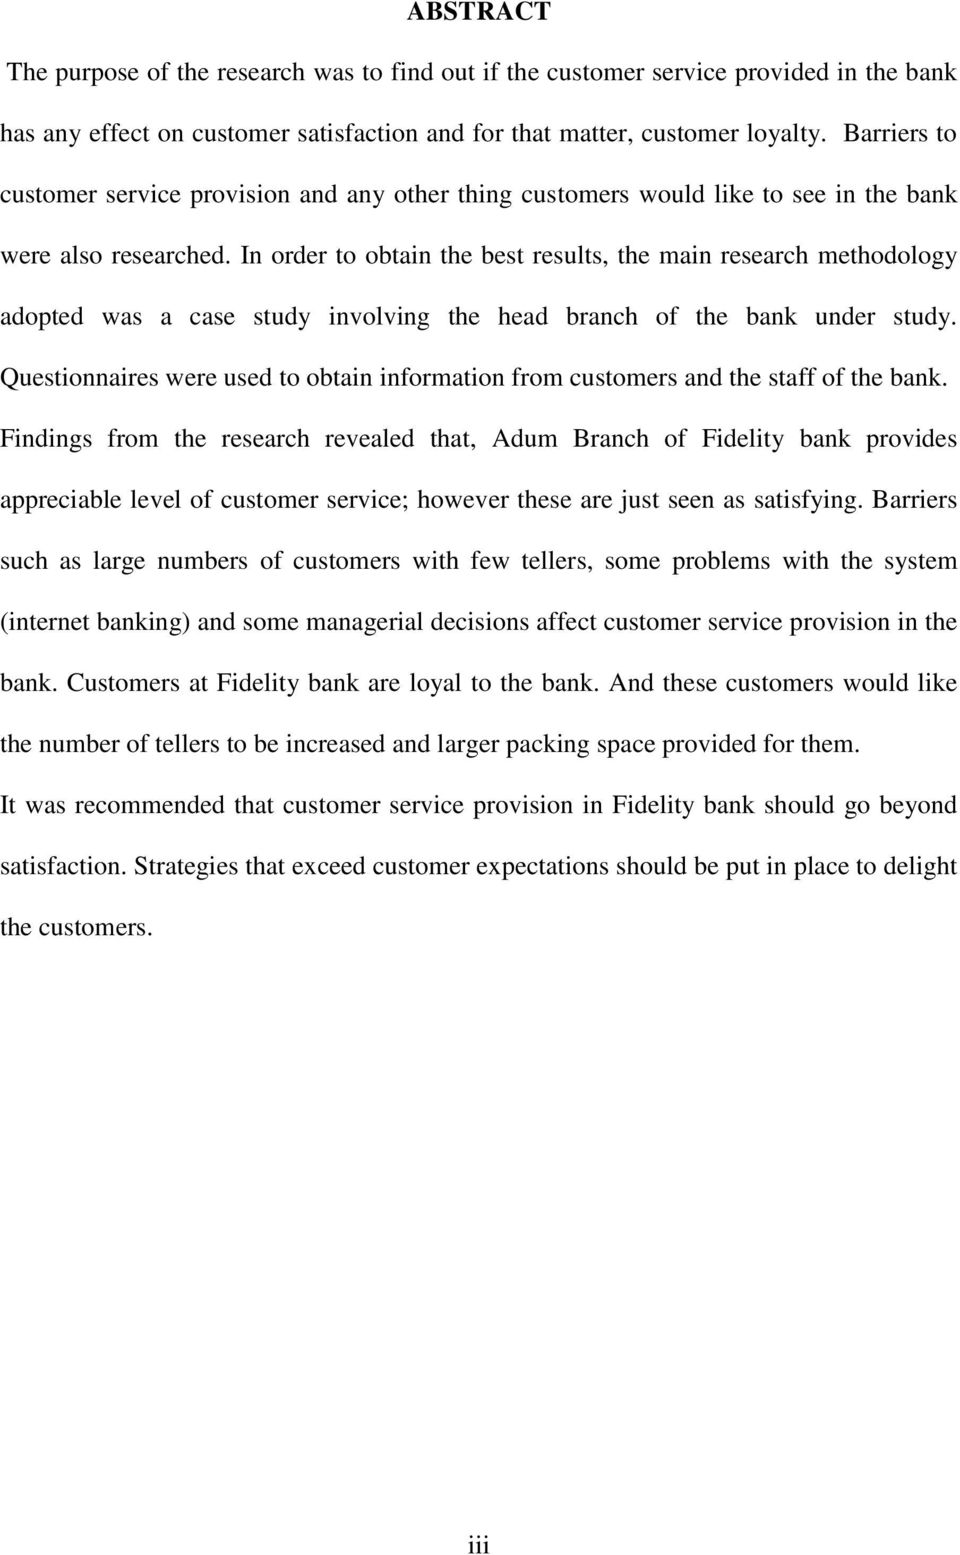 thesis on customer relationship management in banks thesis on customer relationship management in banks asopymes org lulu dissertation on customer relationship management